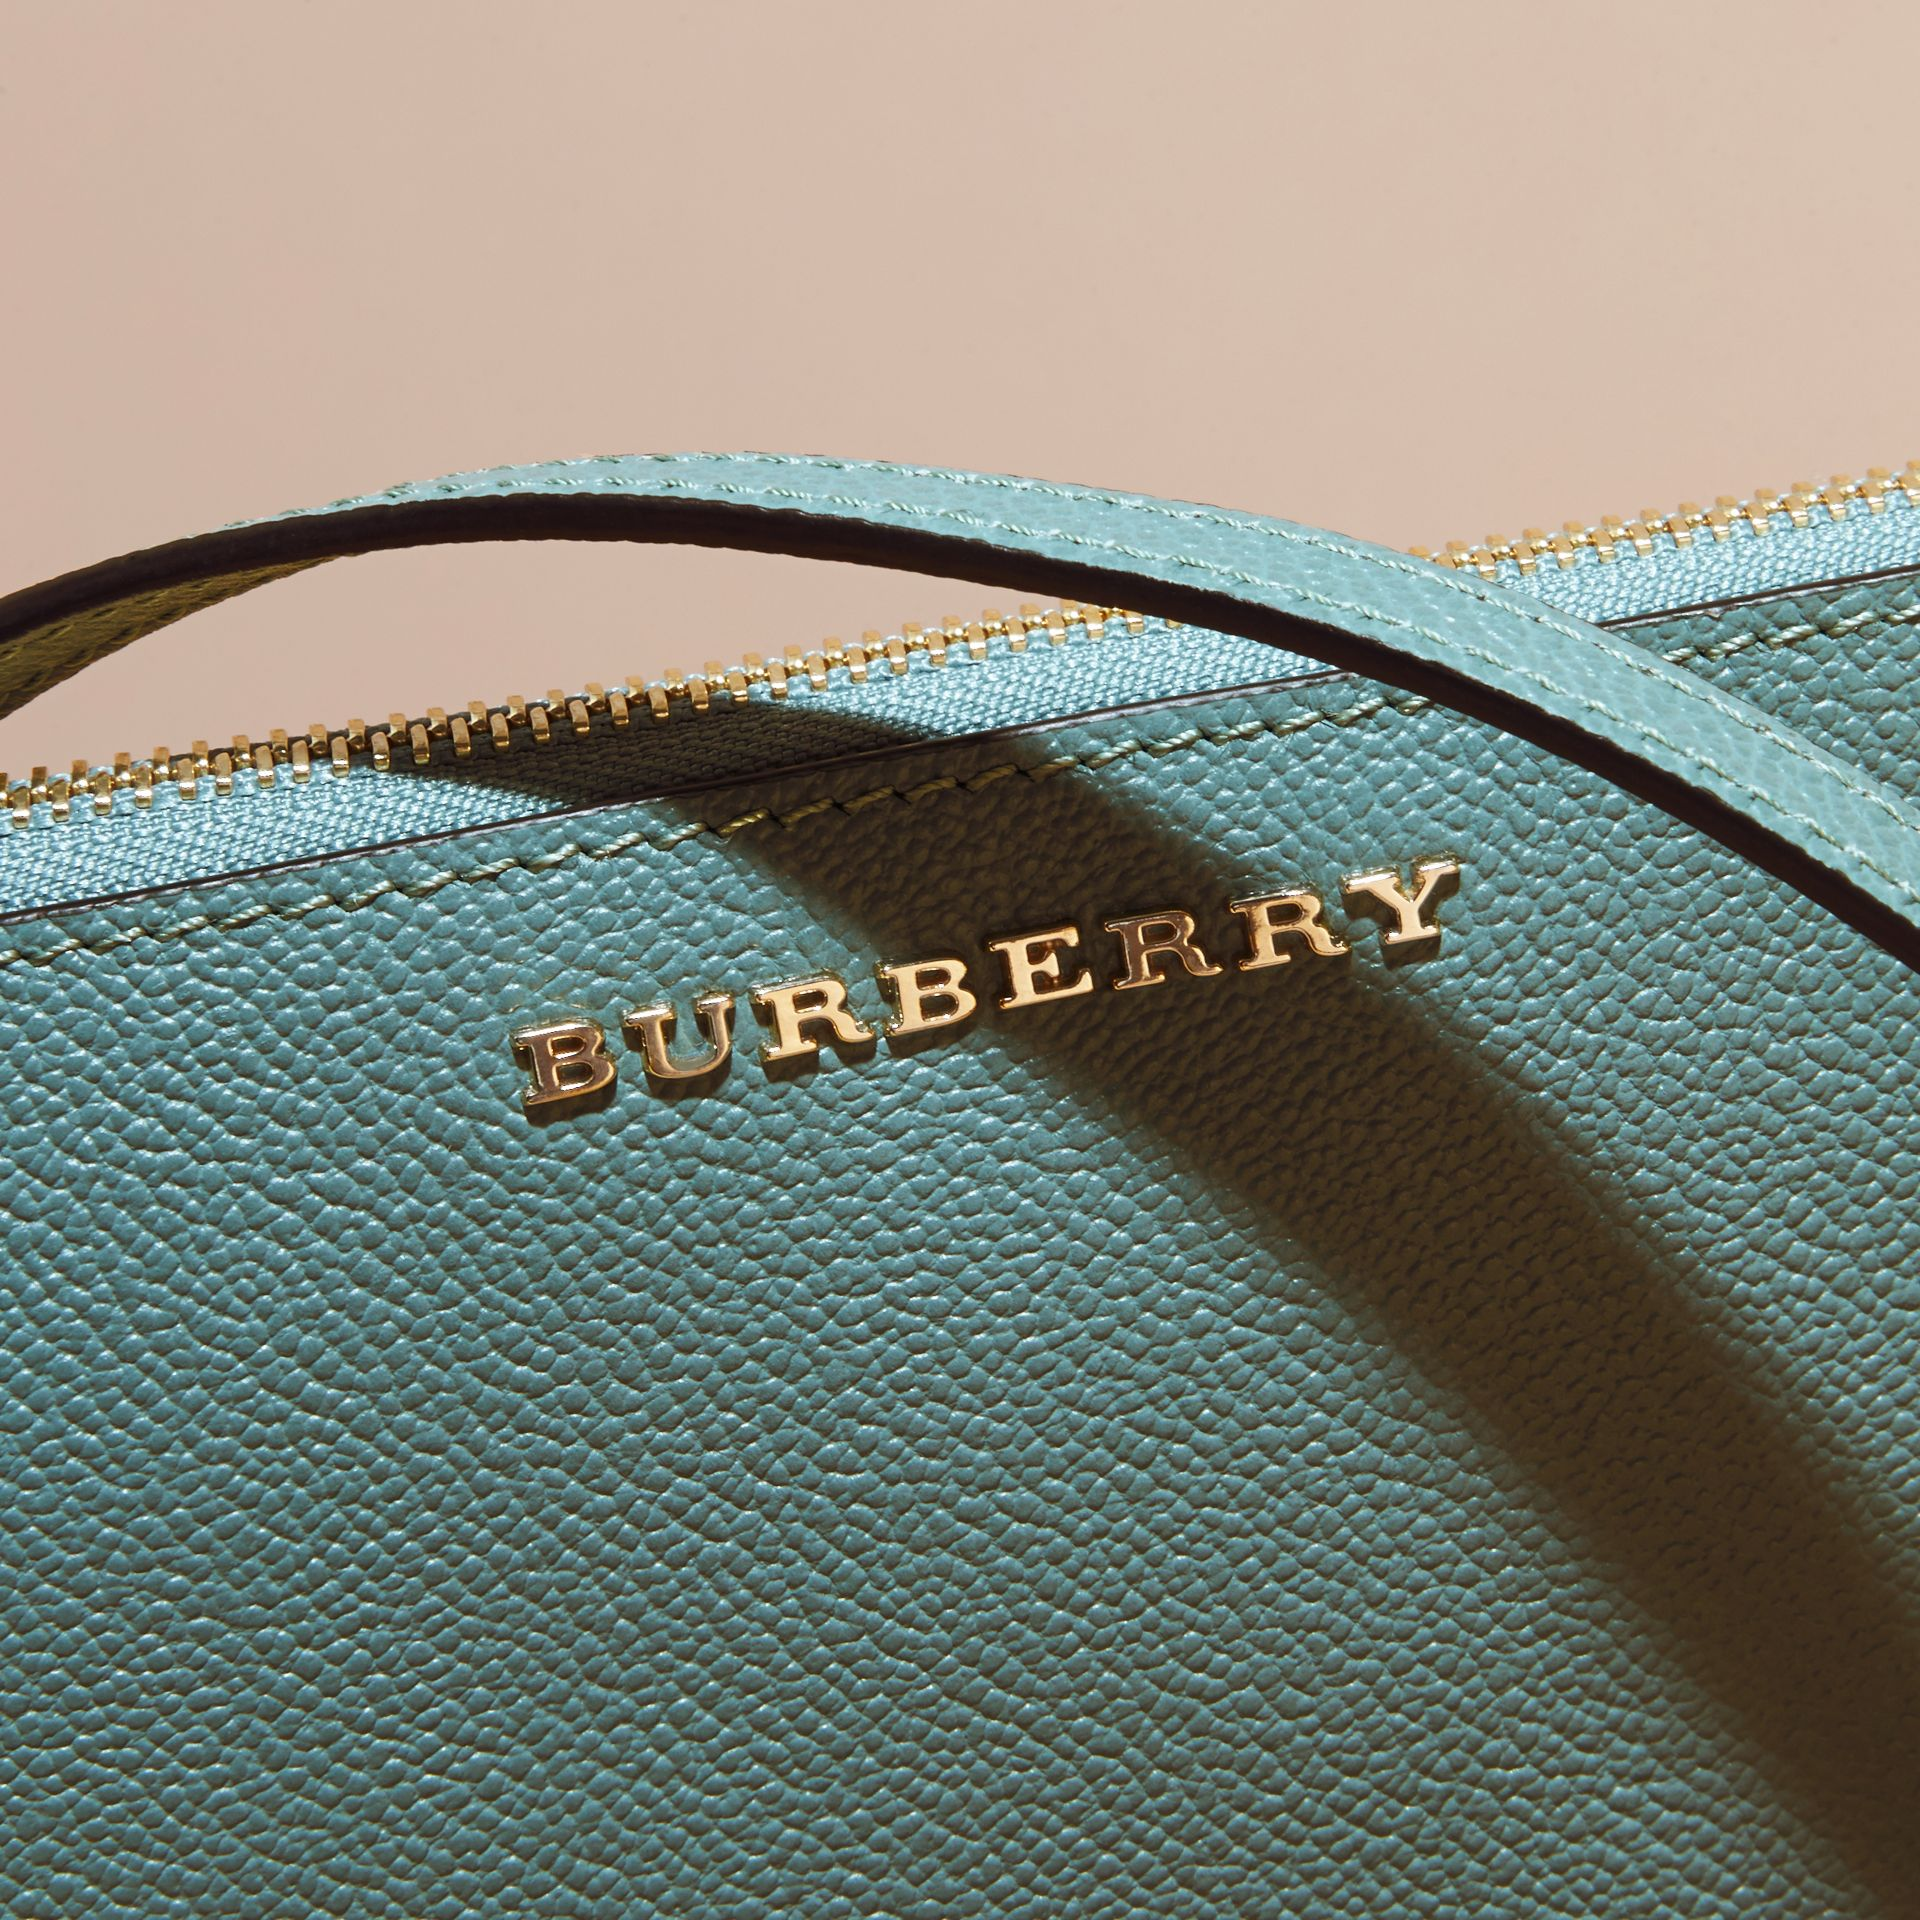 Leather Clutch Bag with Check Lining in Eucalyptus Green - Women | Burberry - gallery image 2